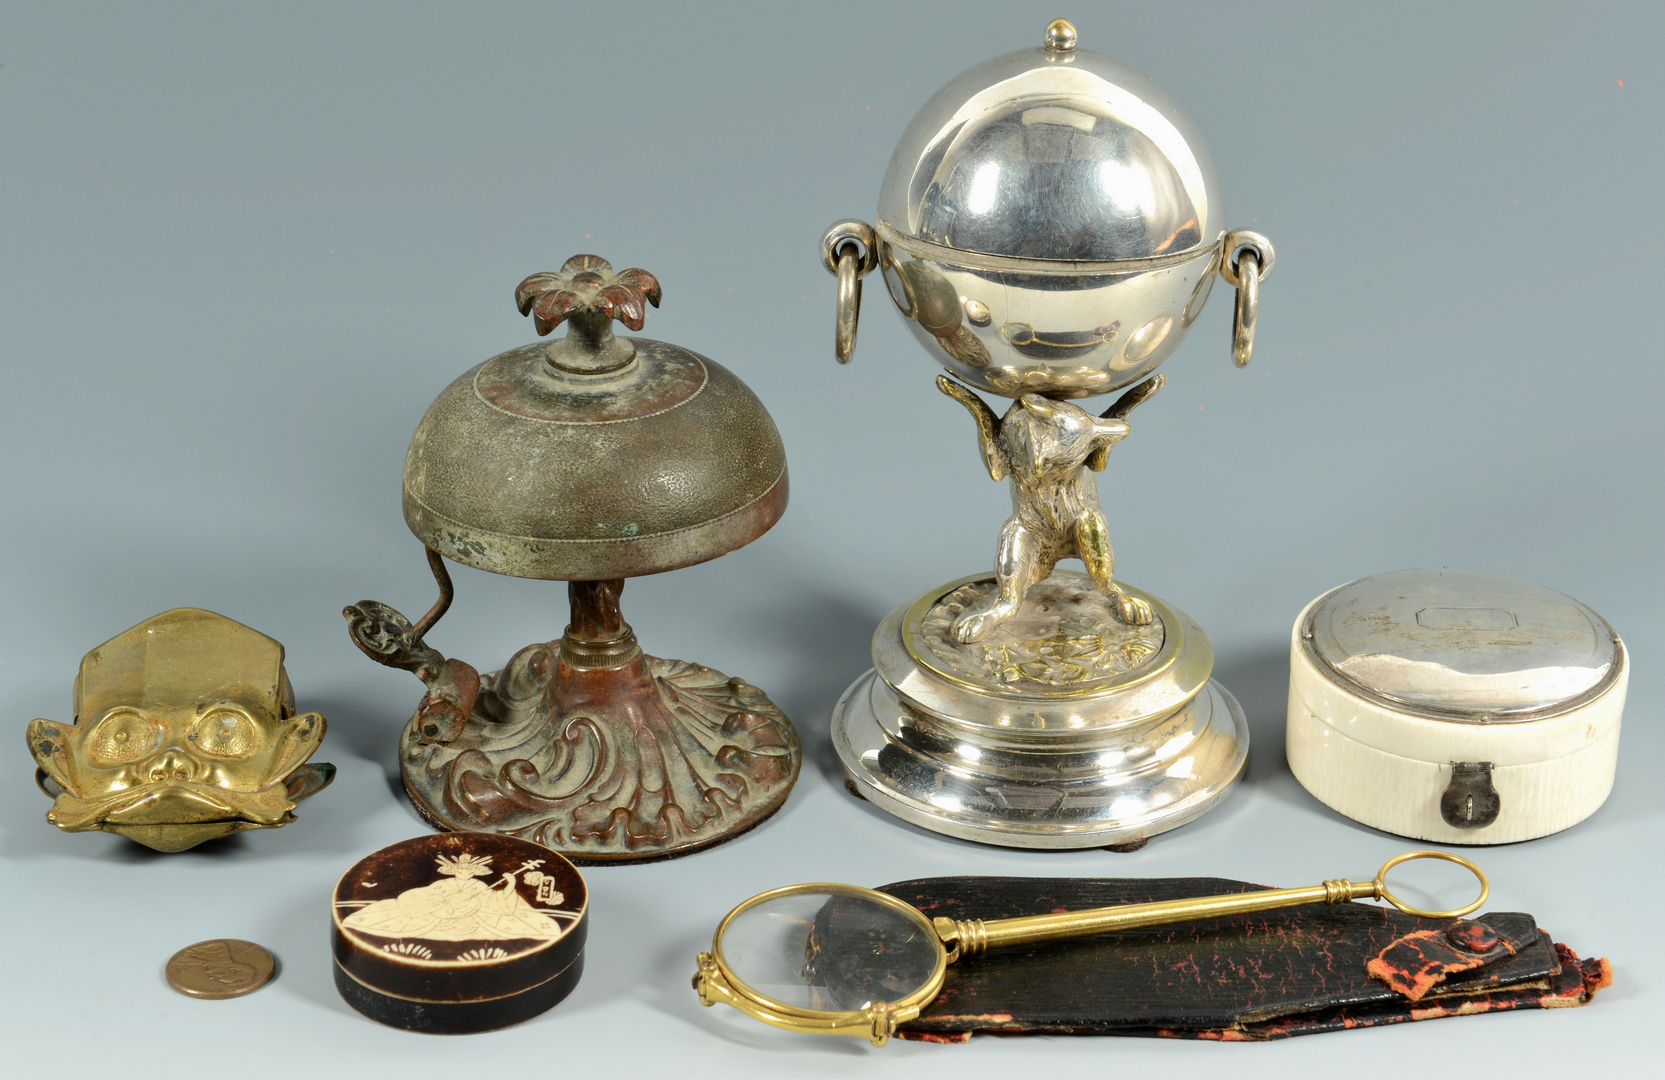 Lot 3088174: 6 Decorative Desk Items inc. Figurals